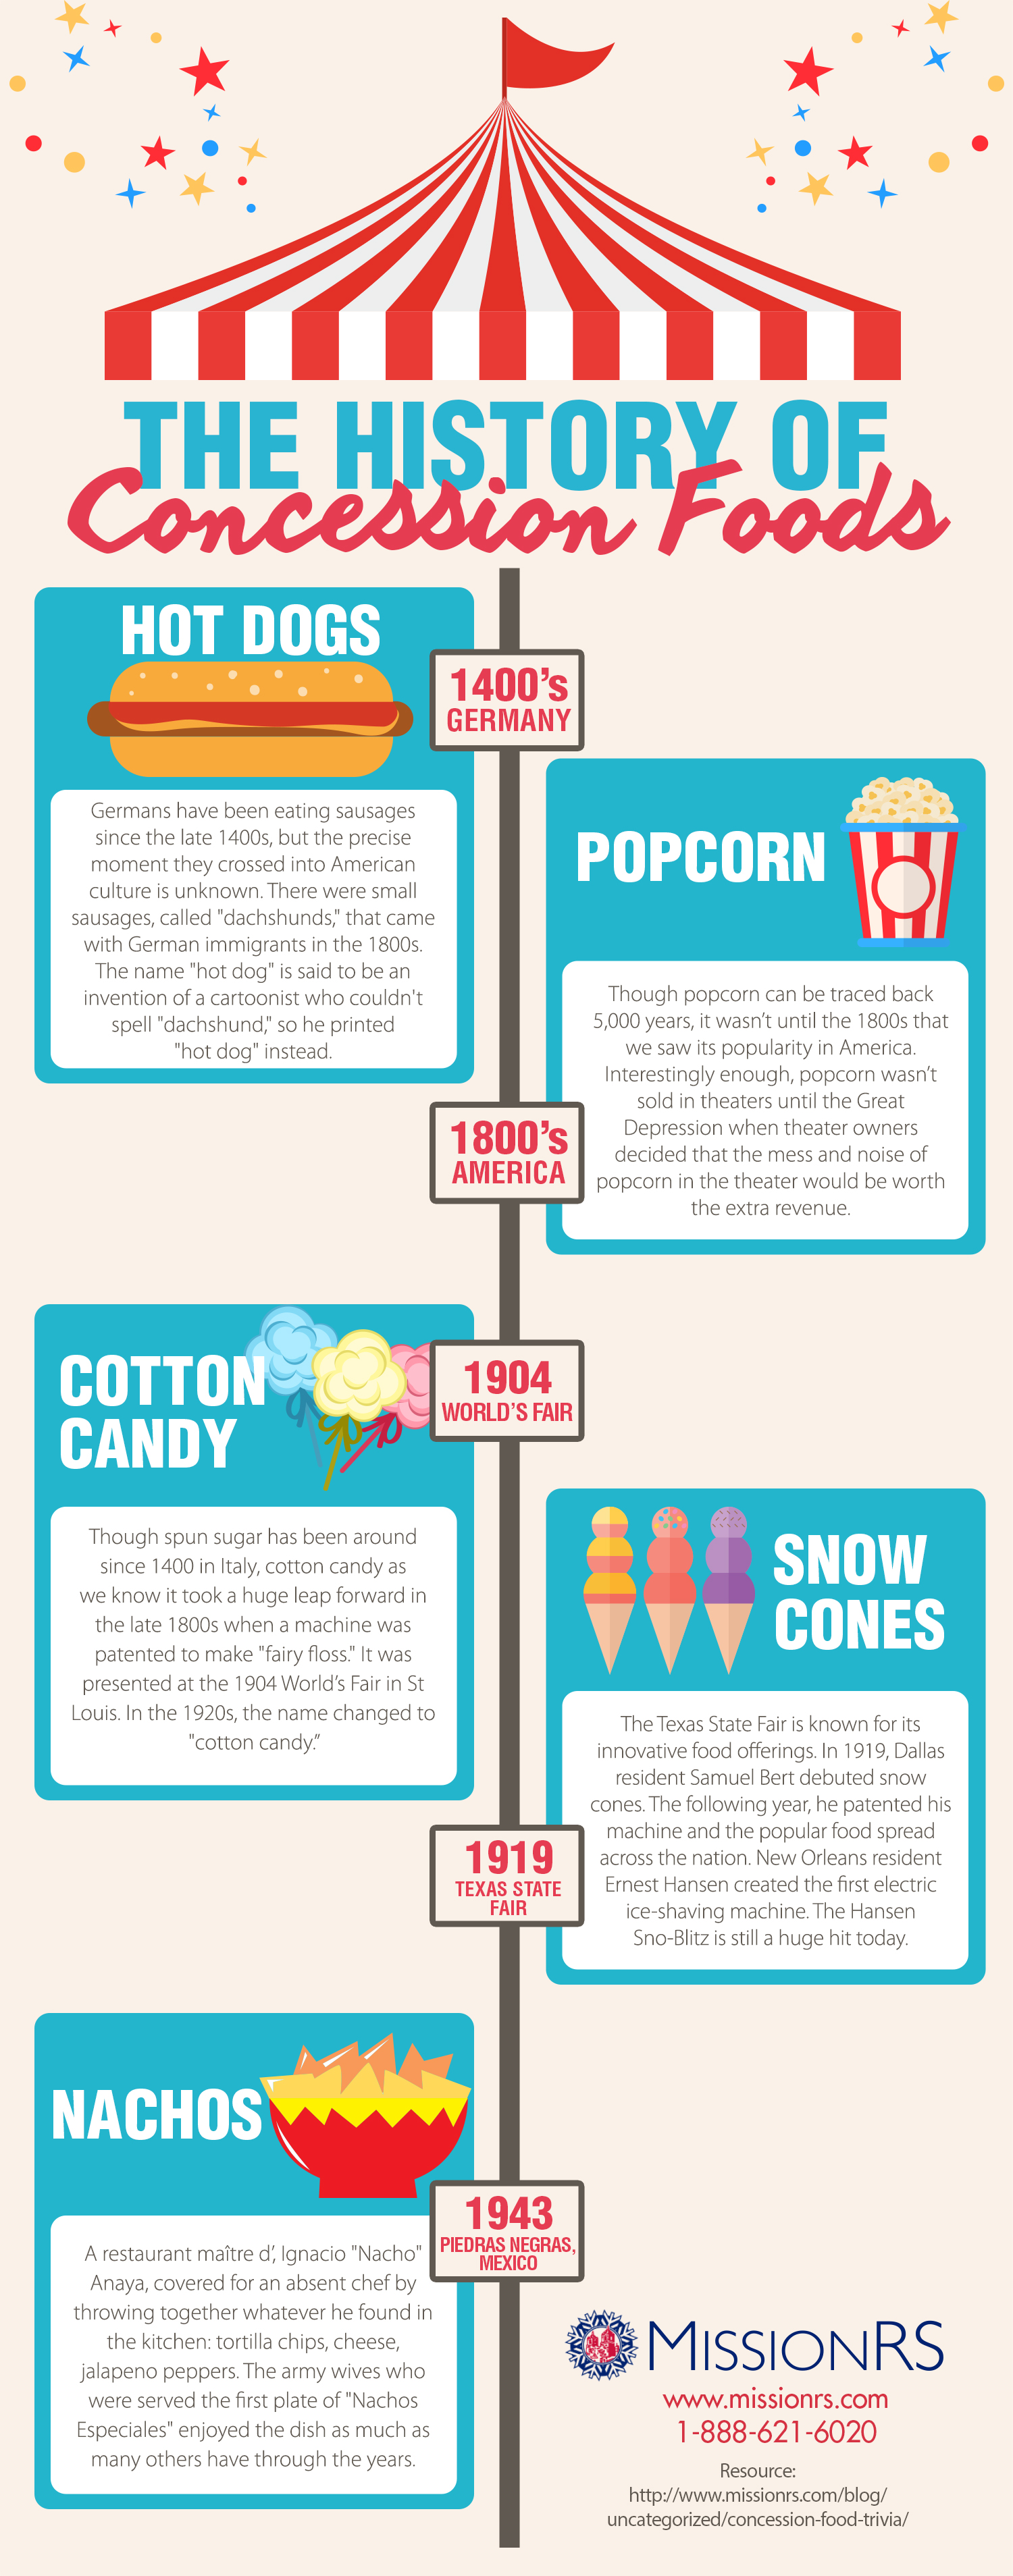 history of popcorn, hot dogs, cotton candy, snow cones and nachos